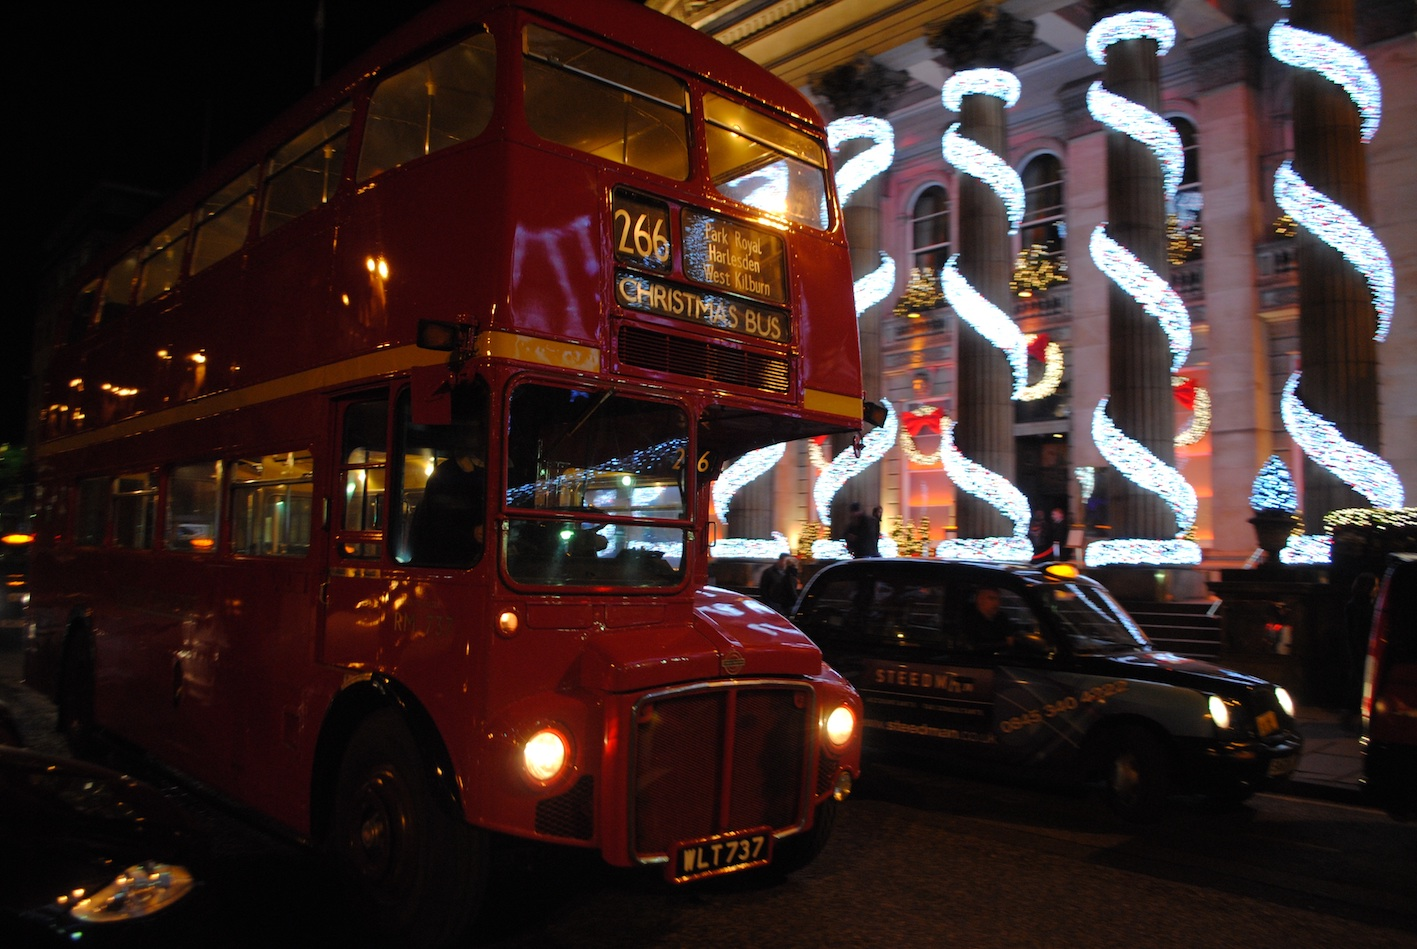 Christmas bus Edinburgh.jpg